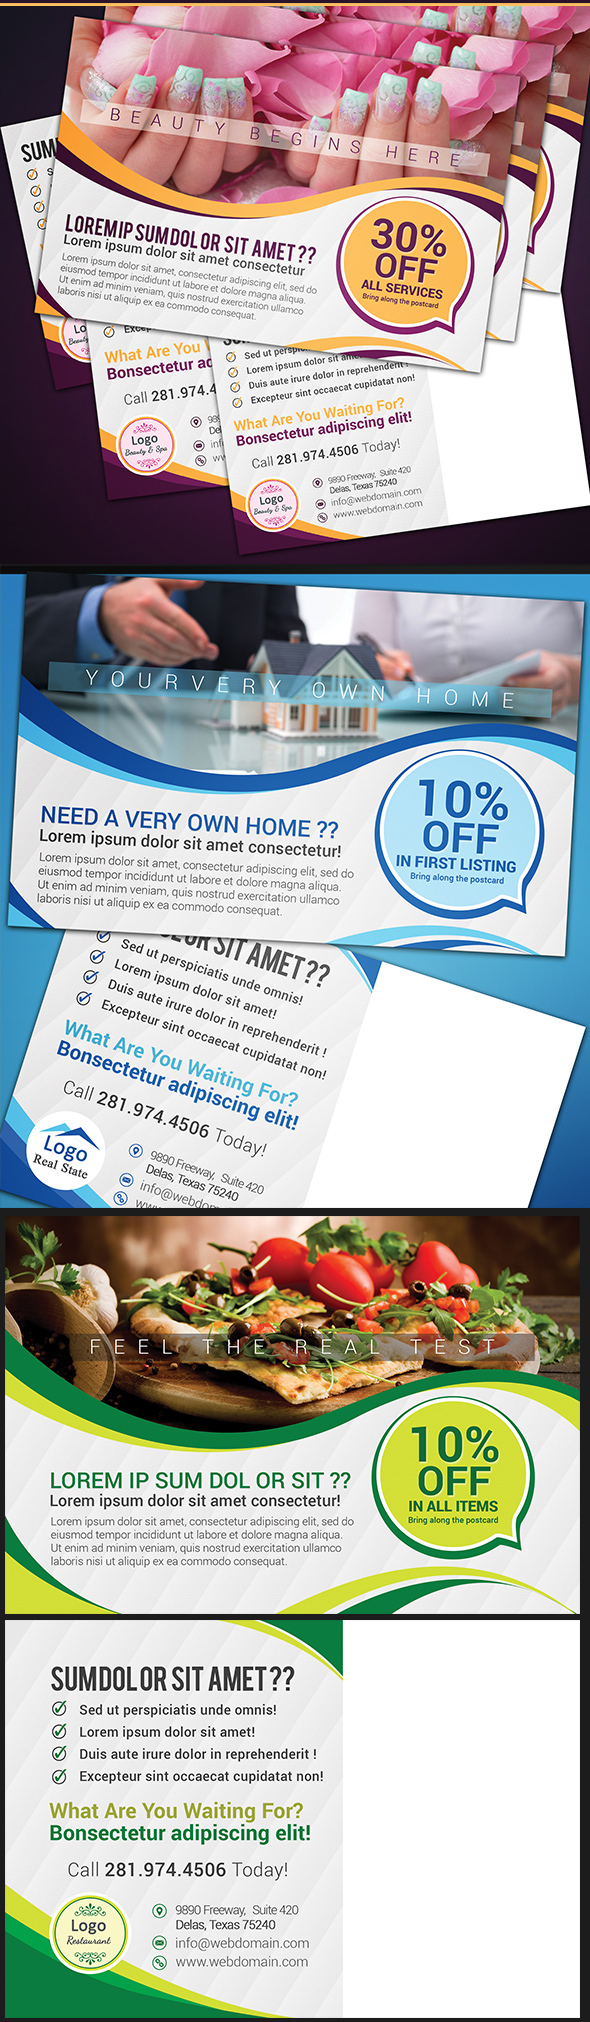 Free Postcard Template for Restaurant Real-state & SPA on